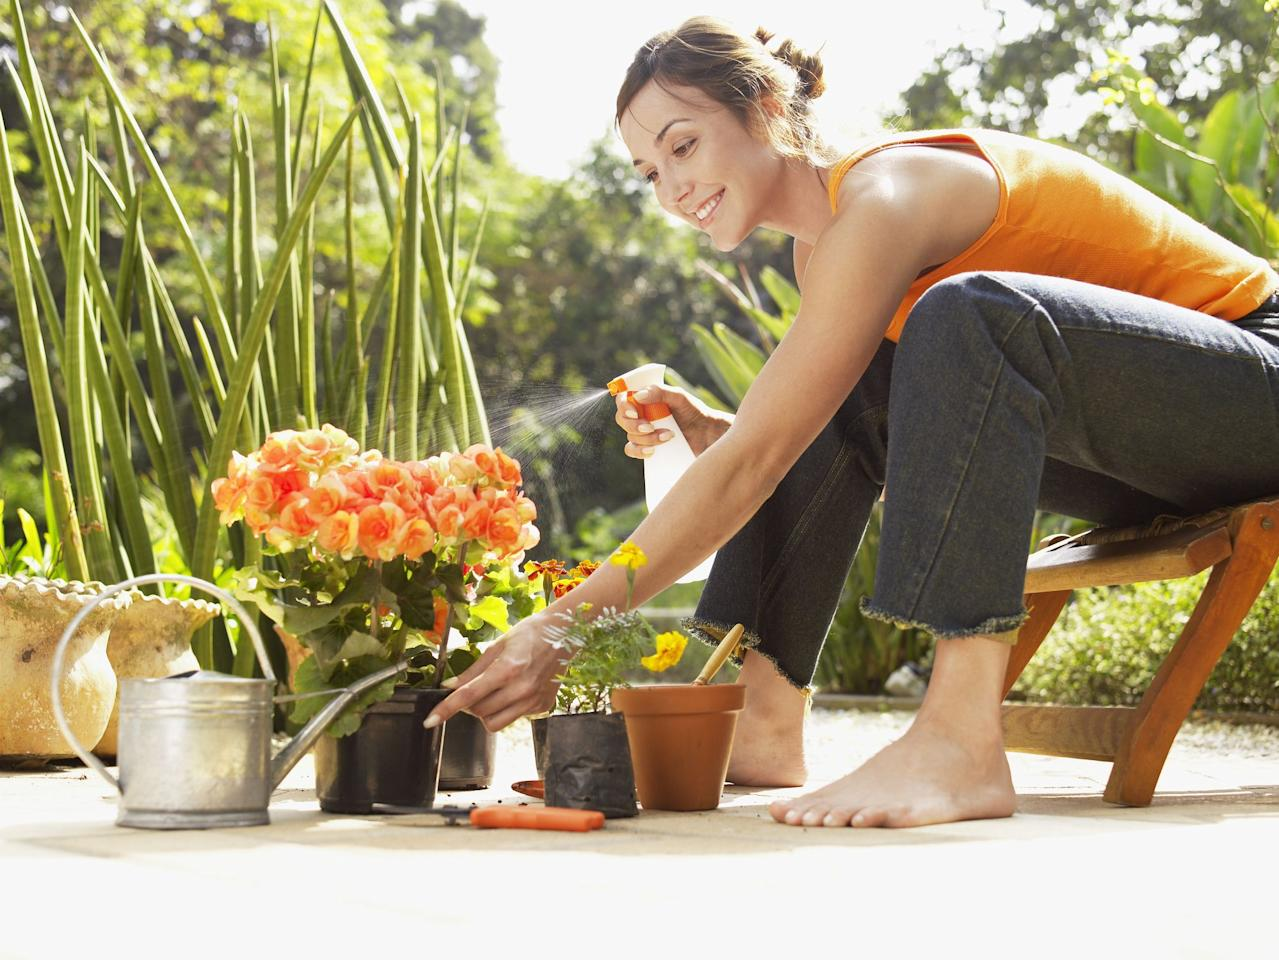 These Handy Outdoor Stools Make Gardening So Much Easier